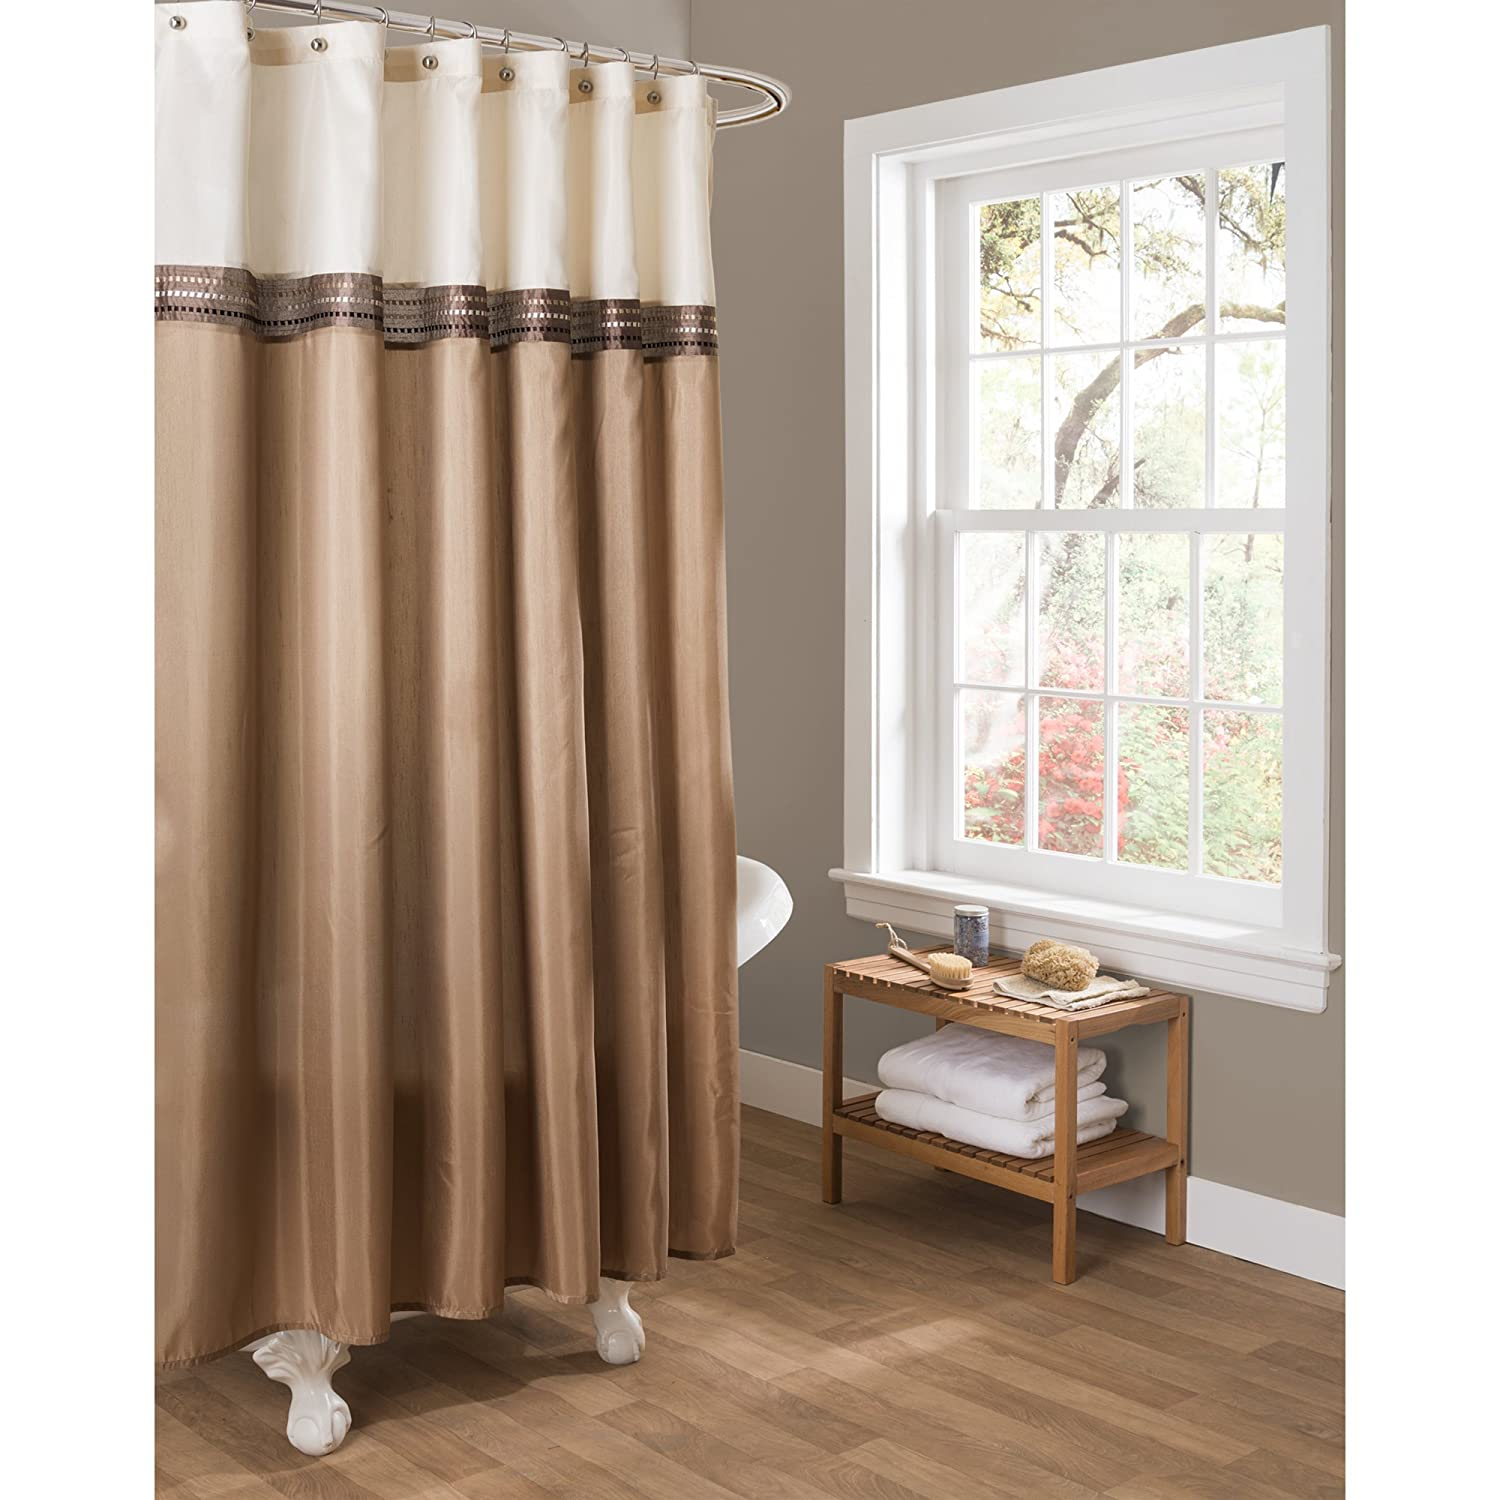 Brown shower curtains - Amazon Com Lush Decor Terra Shower Curtain 72 By 72 Inch Beige Ivory Home Kitchen